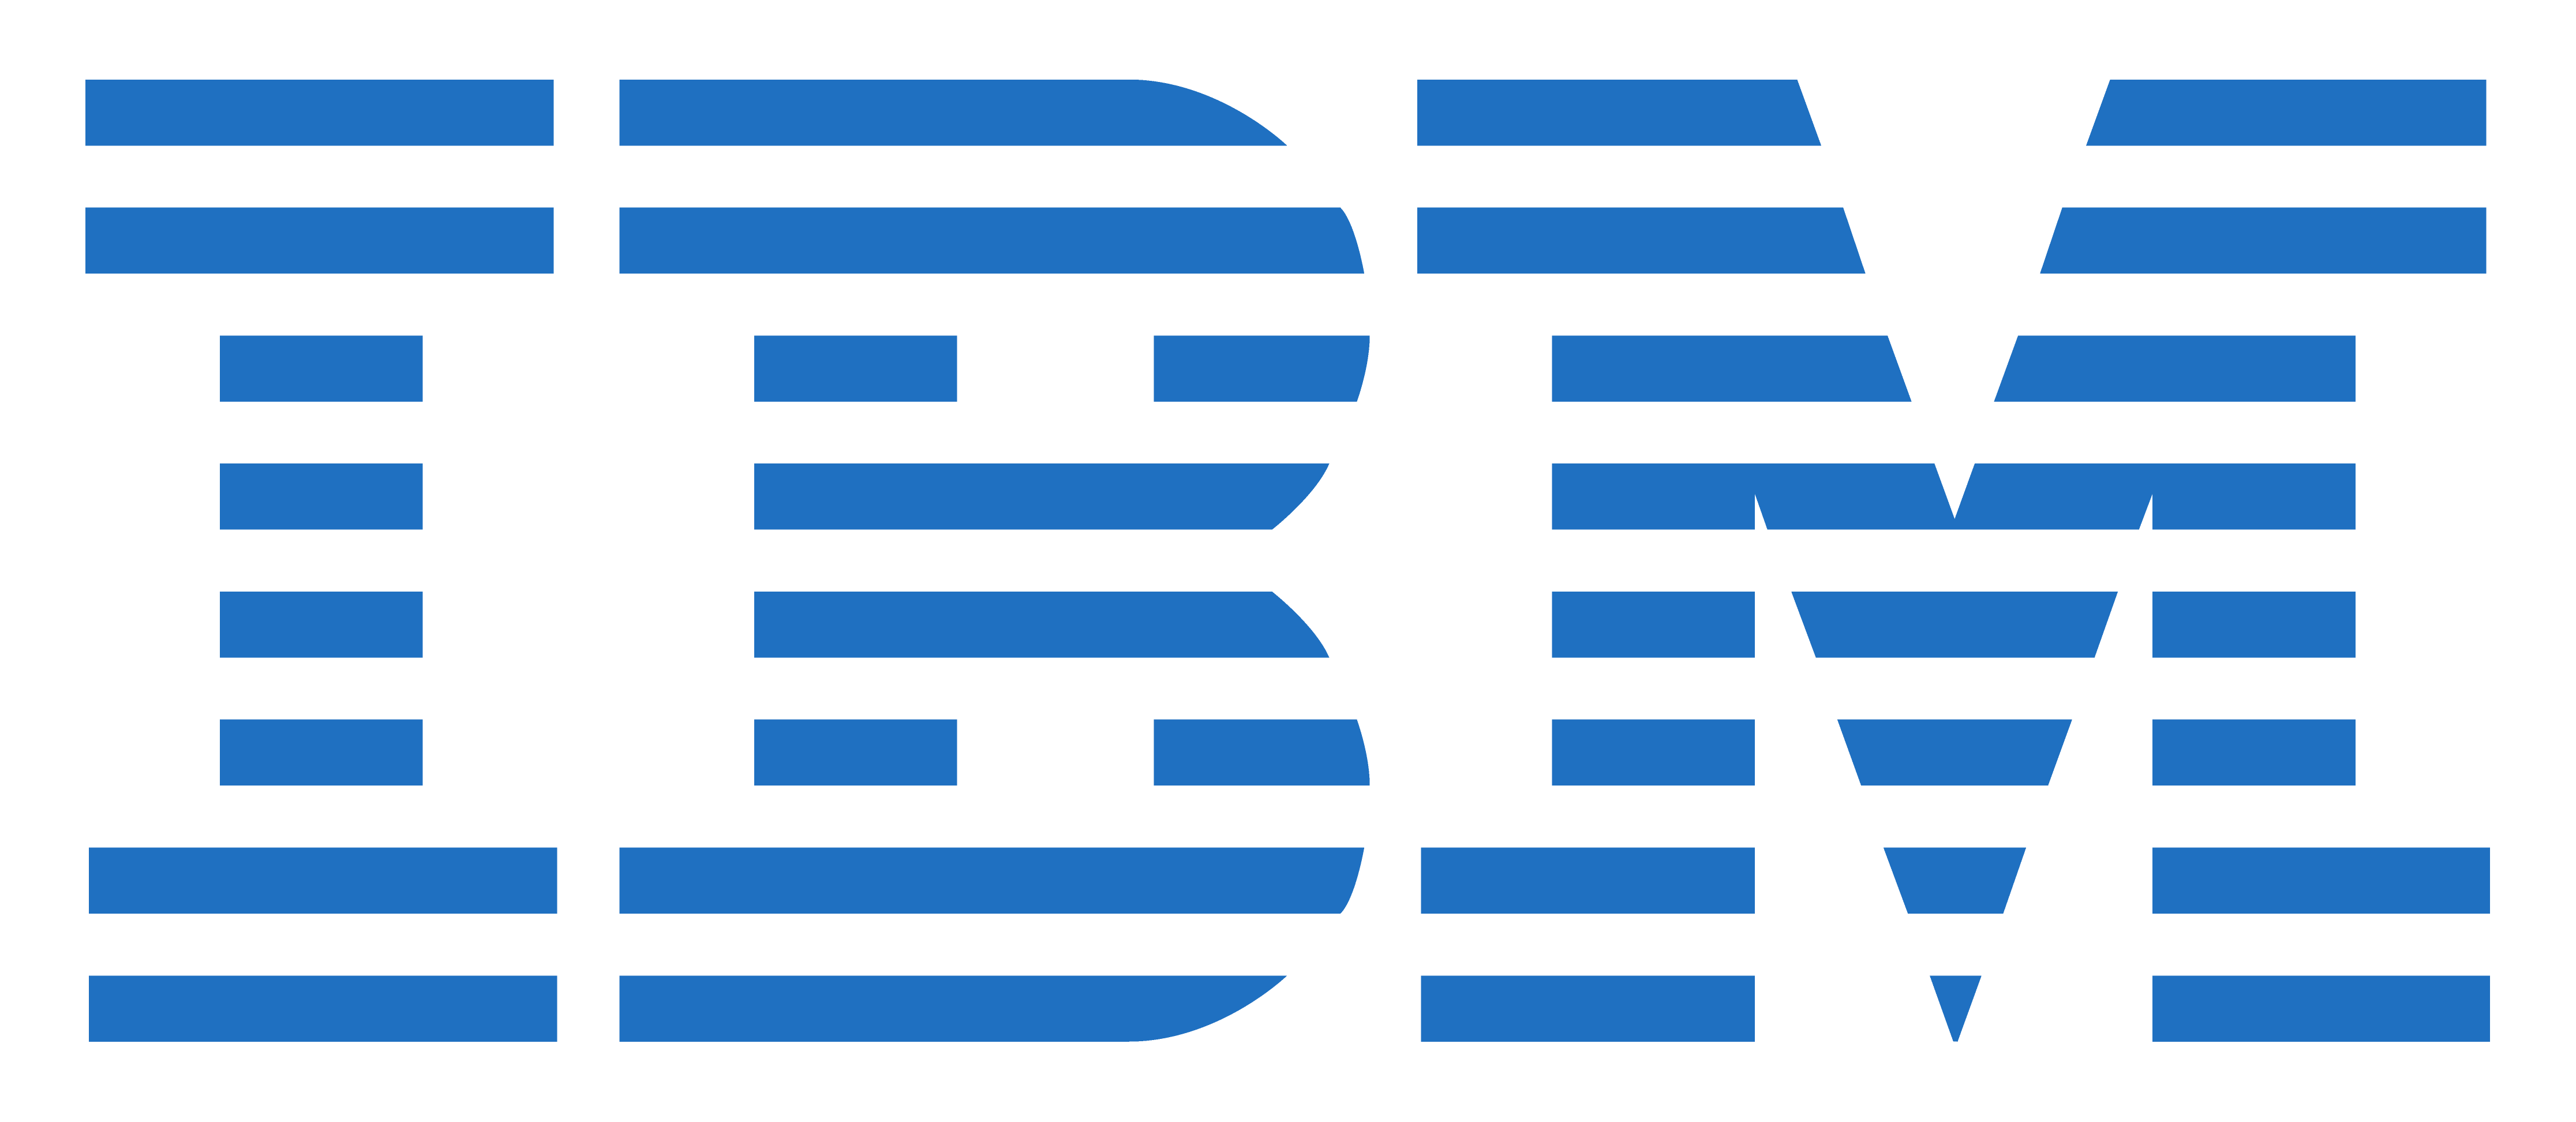 Logo Ibm Analytics Free HD Image PNG Image